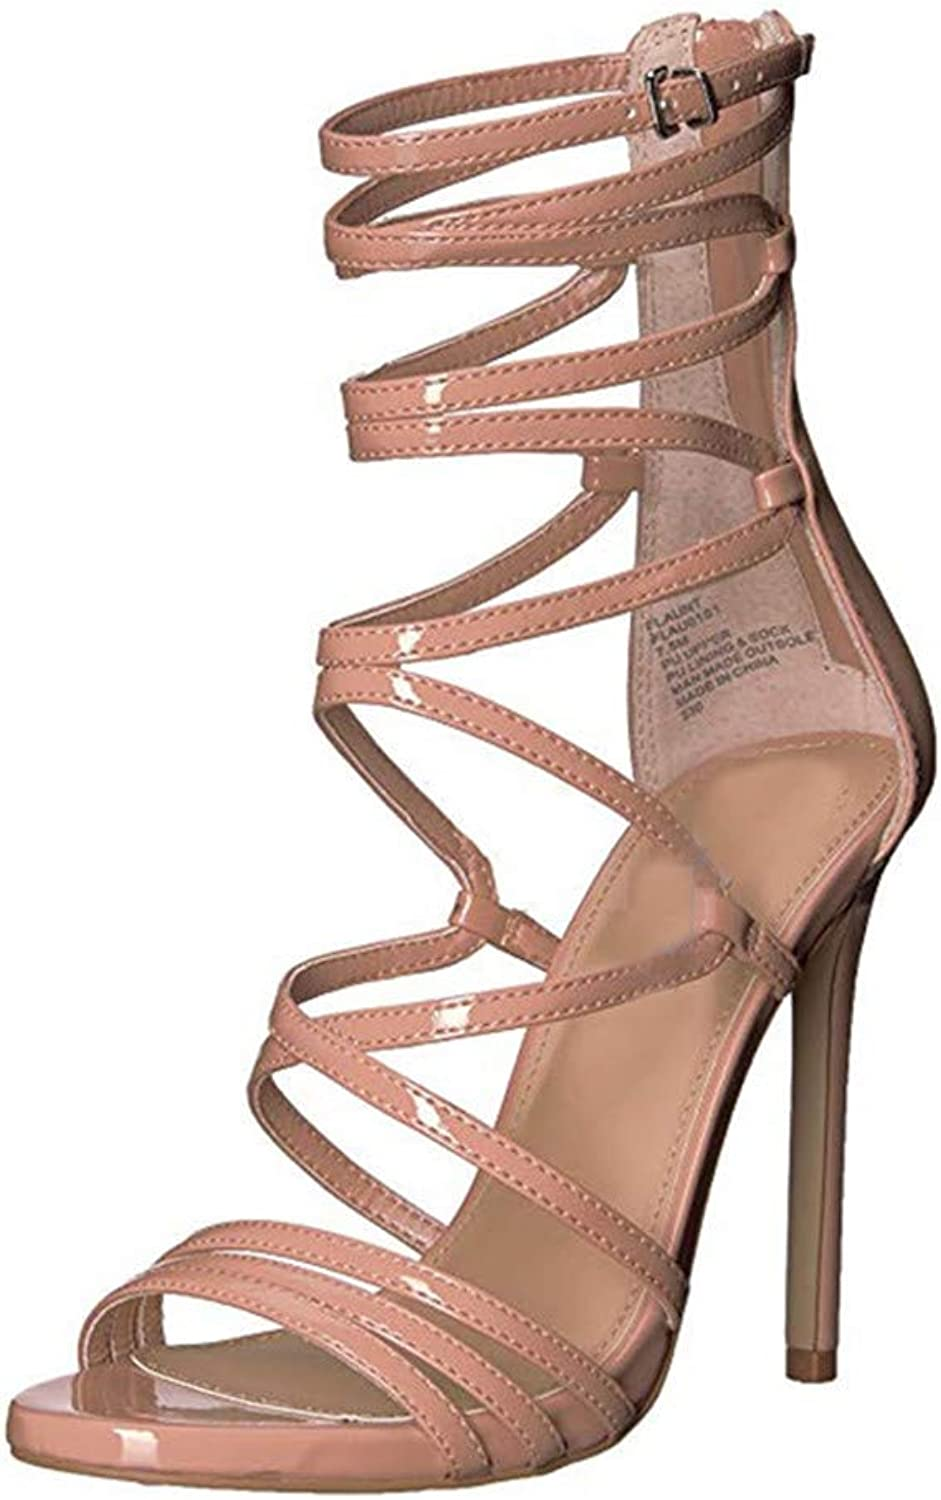 Party Women's Gladiator shoes Woman Sexy Thin High Heels Summer Date Prom shoes Sandals